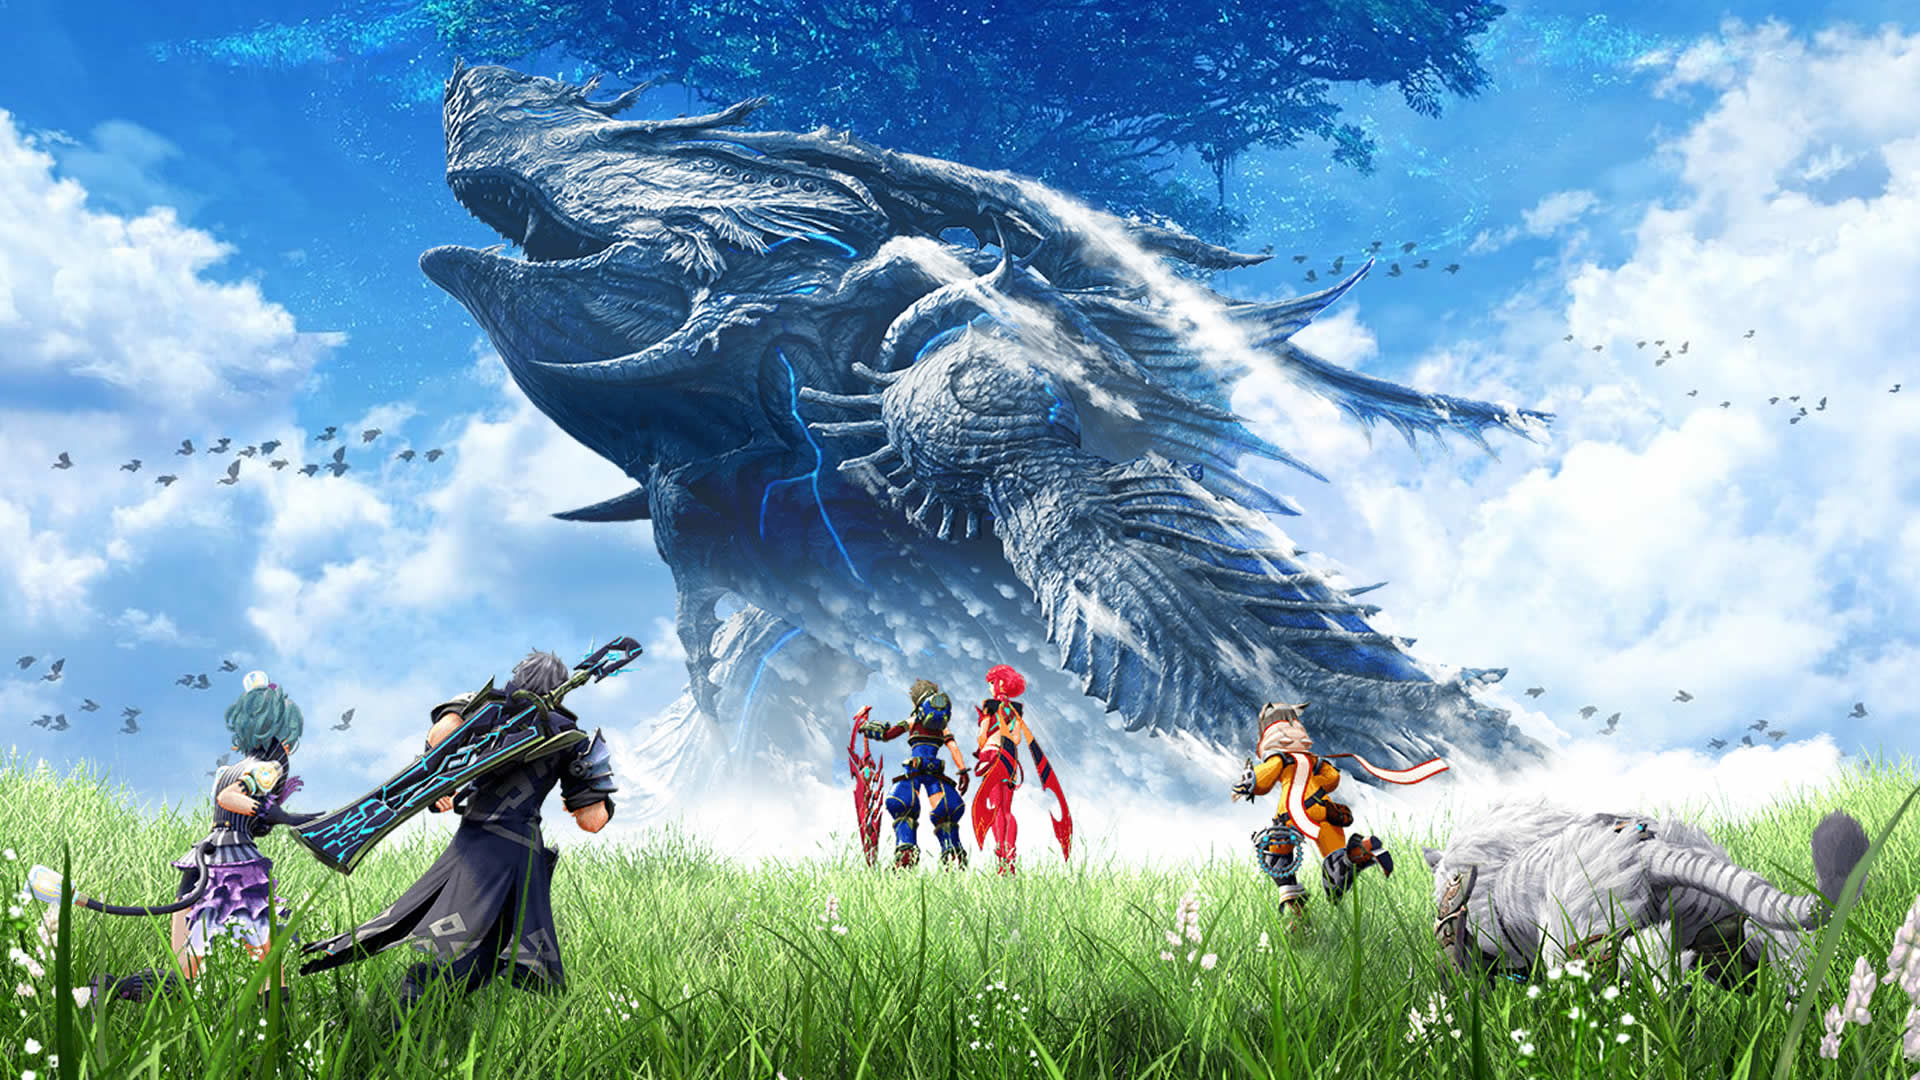 Xenoblade Chronicles 2 Hd Wallpaper Posted By Ethan Sellers